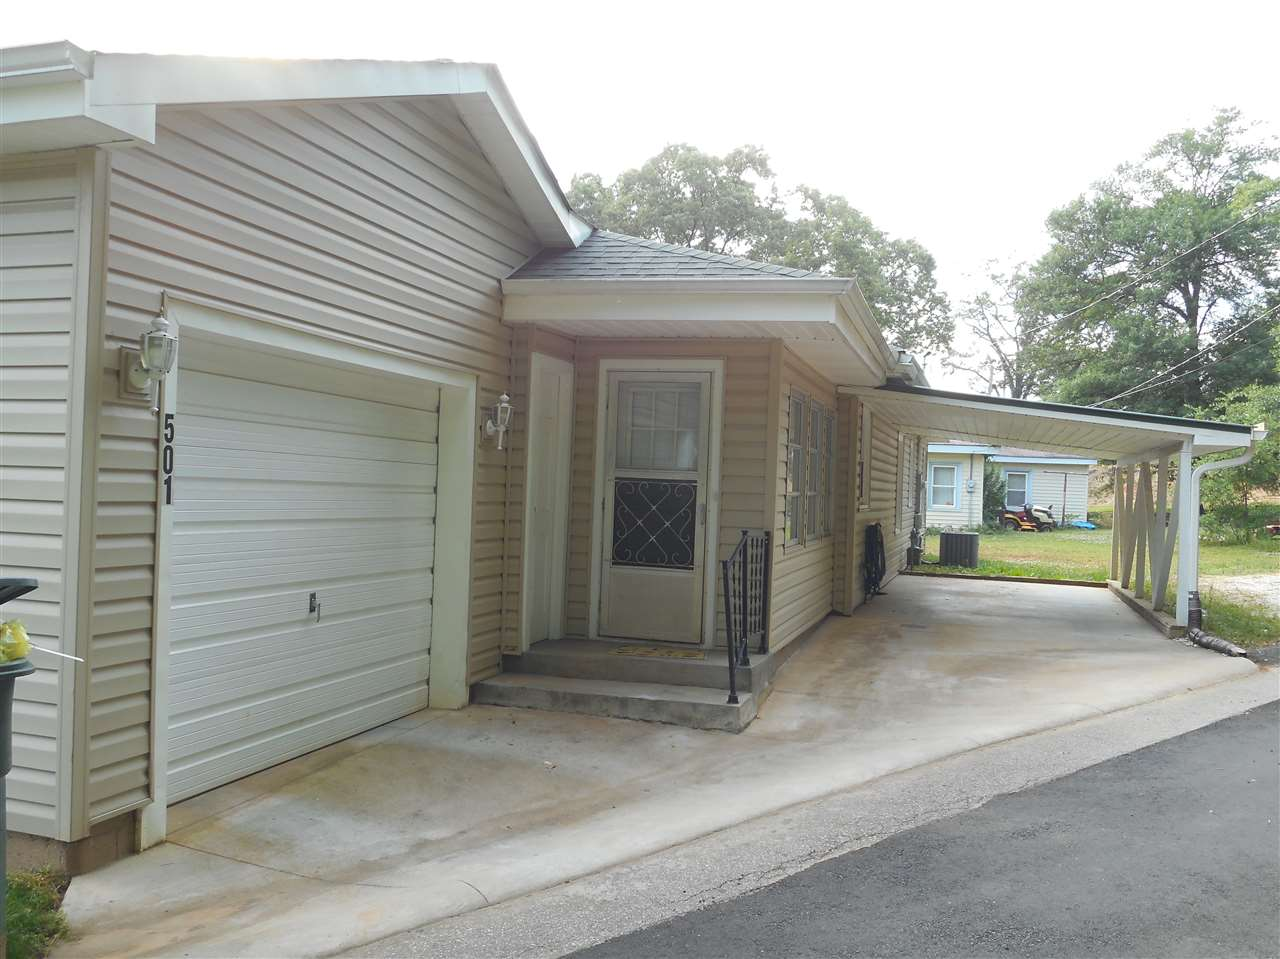 Rental Homes for Rent, ListingId:33501160, location: 501 Rackley Alley Seneca 29678